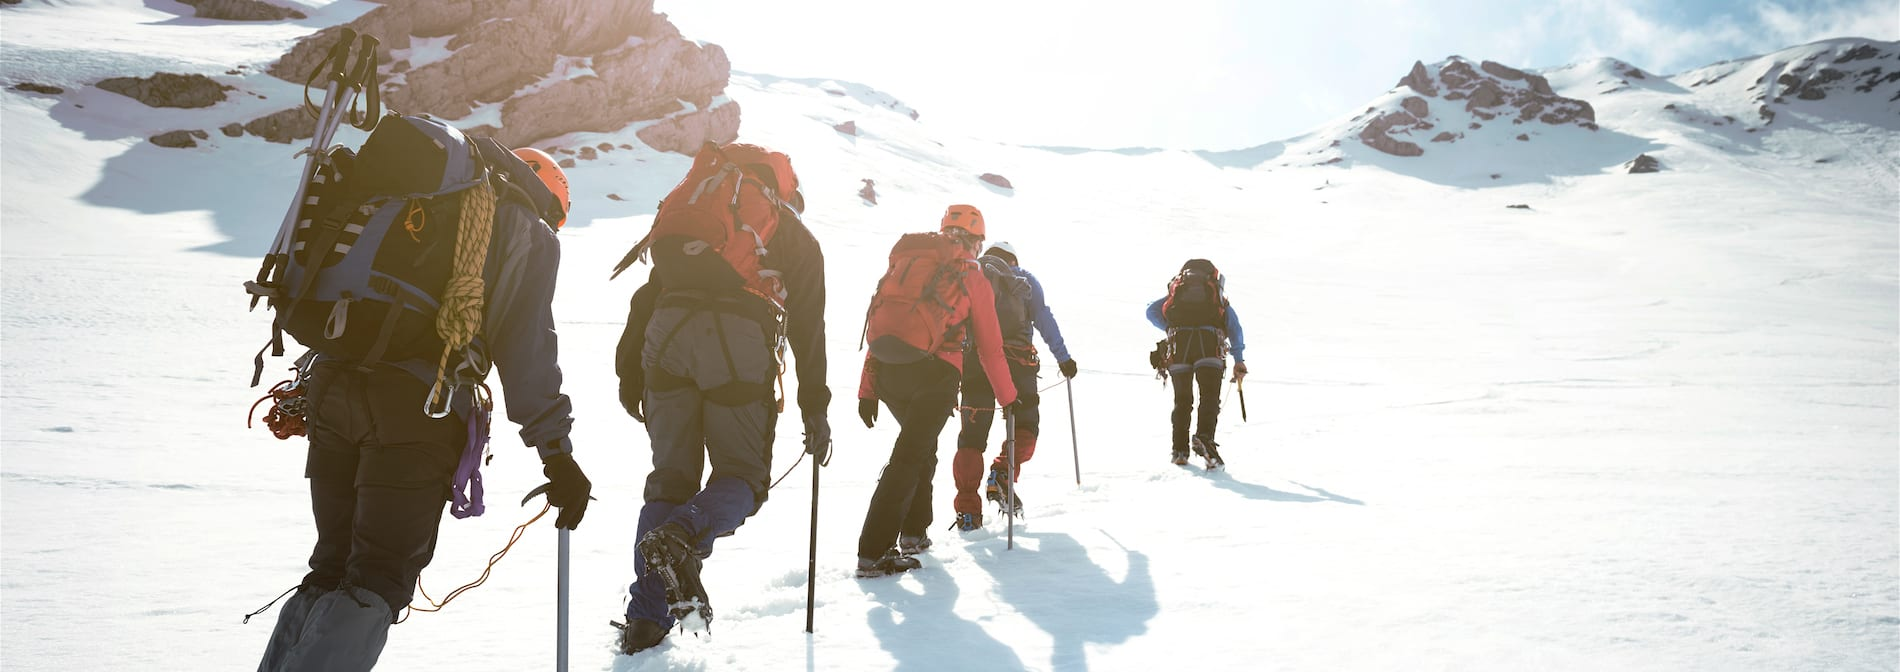 mountaineers climbing a snowy slope